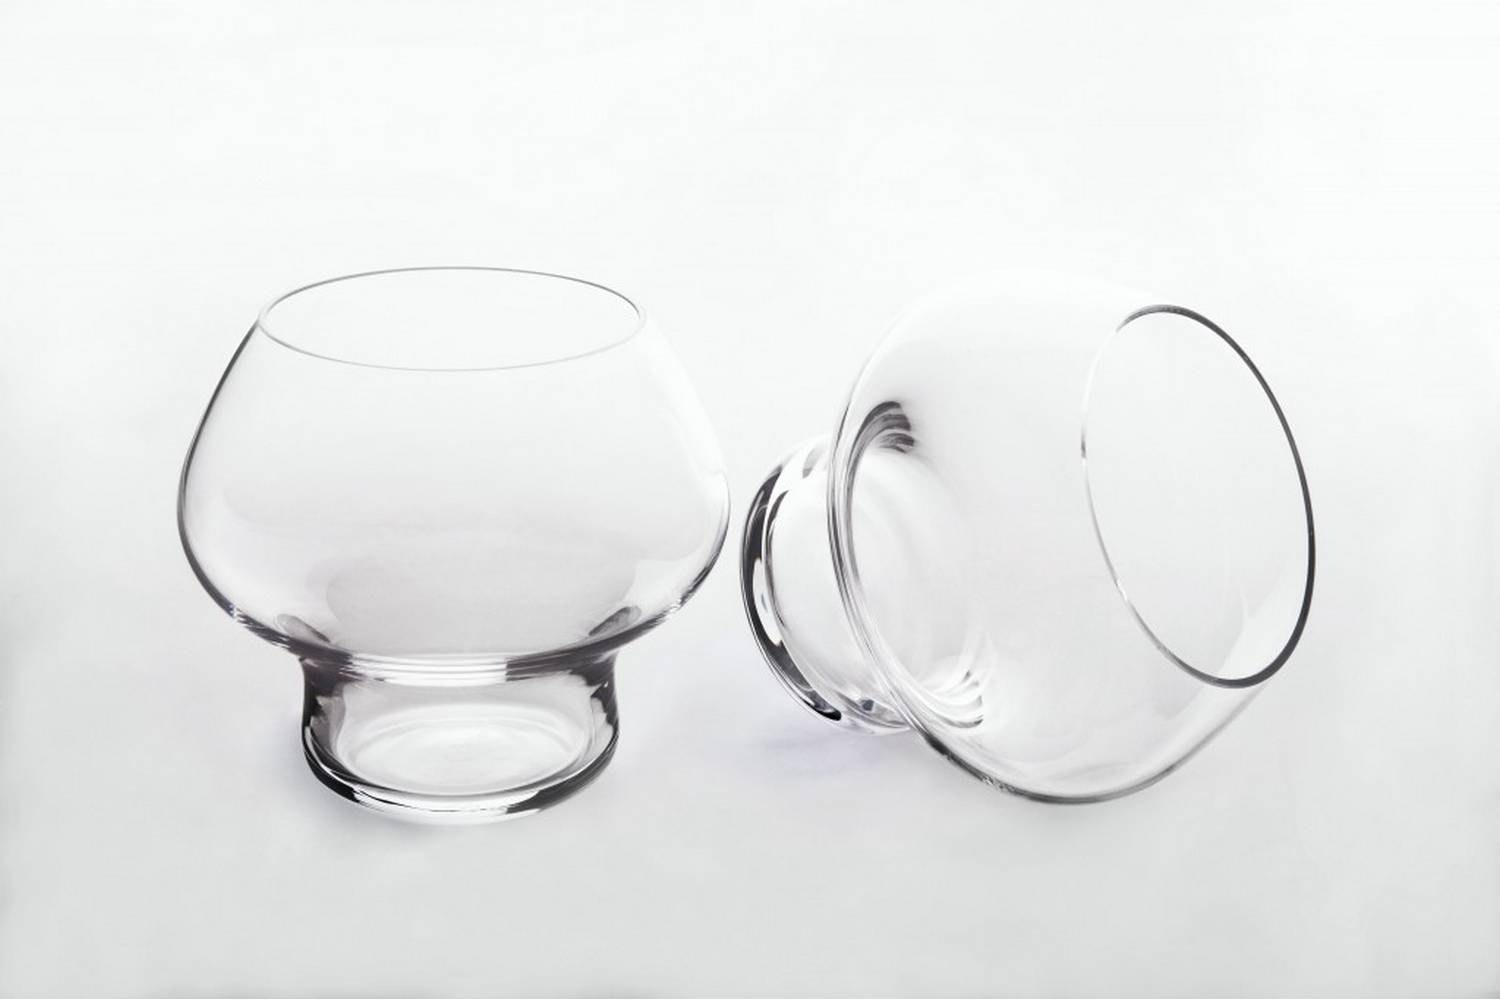 Spring Glass by Jorn Utzon for Architectmade